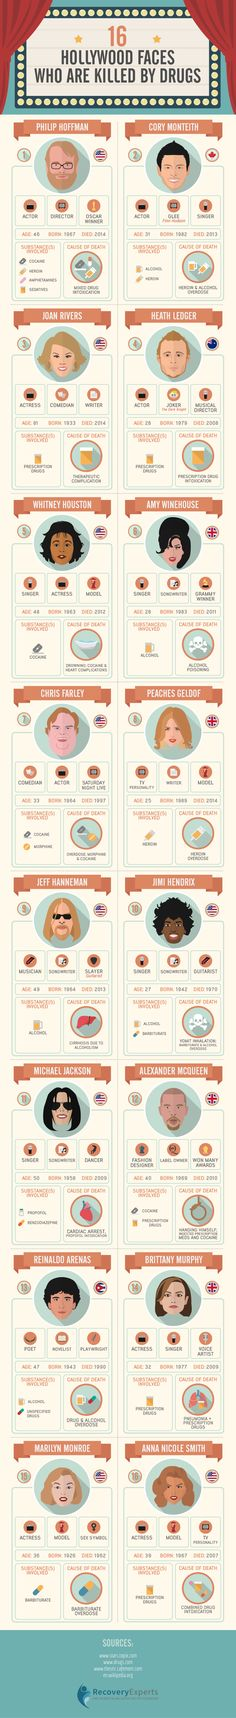 16 Hollywood Faces Who Are Killed by Drugs #Infographic #Celebrities #Drugs